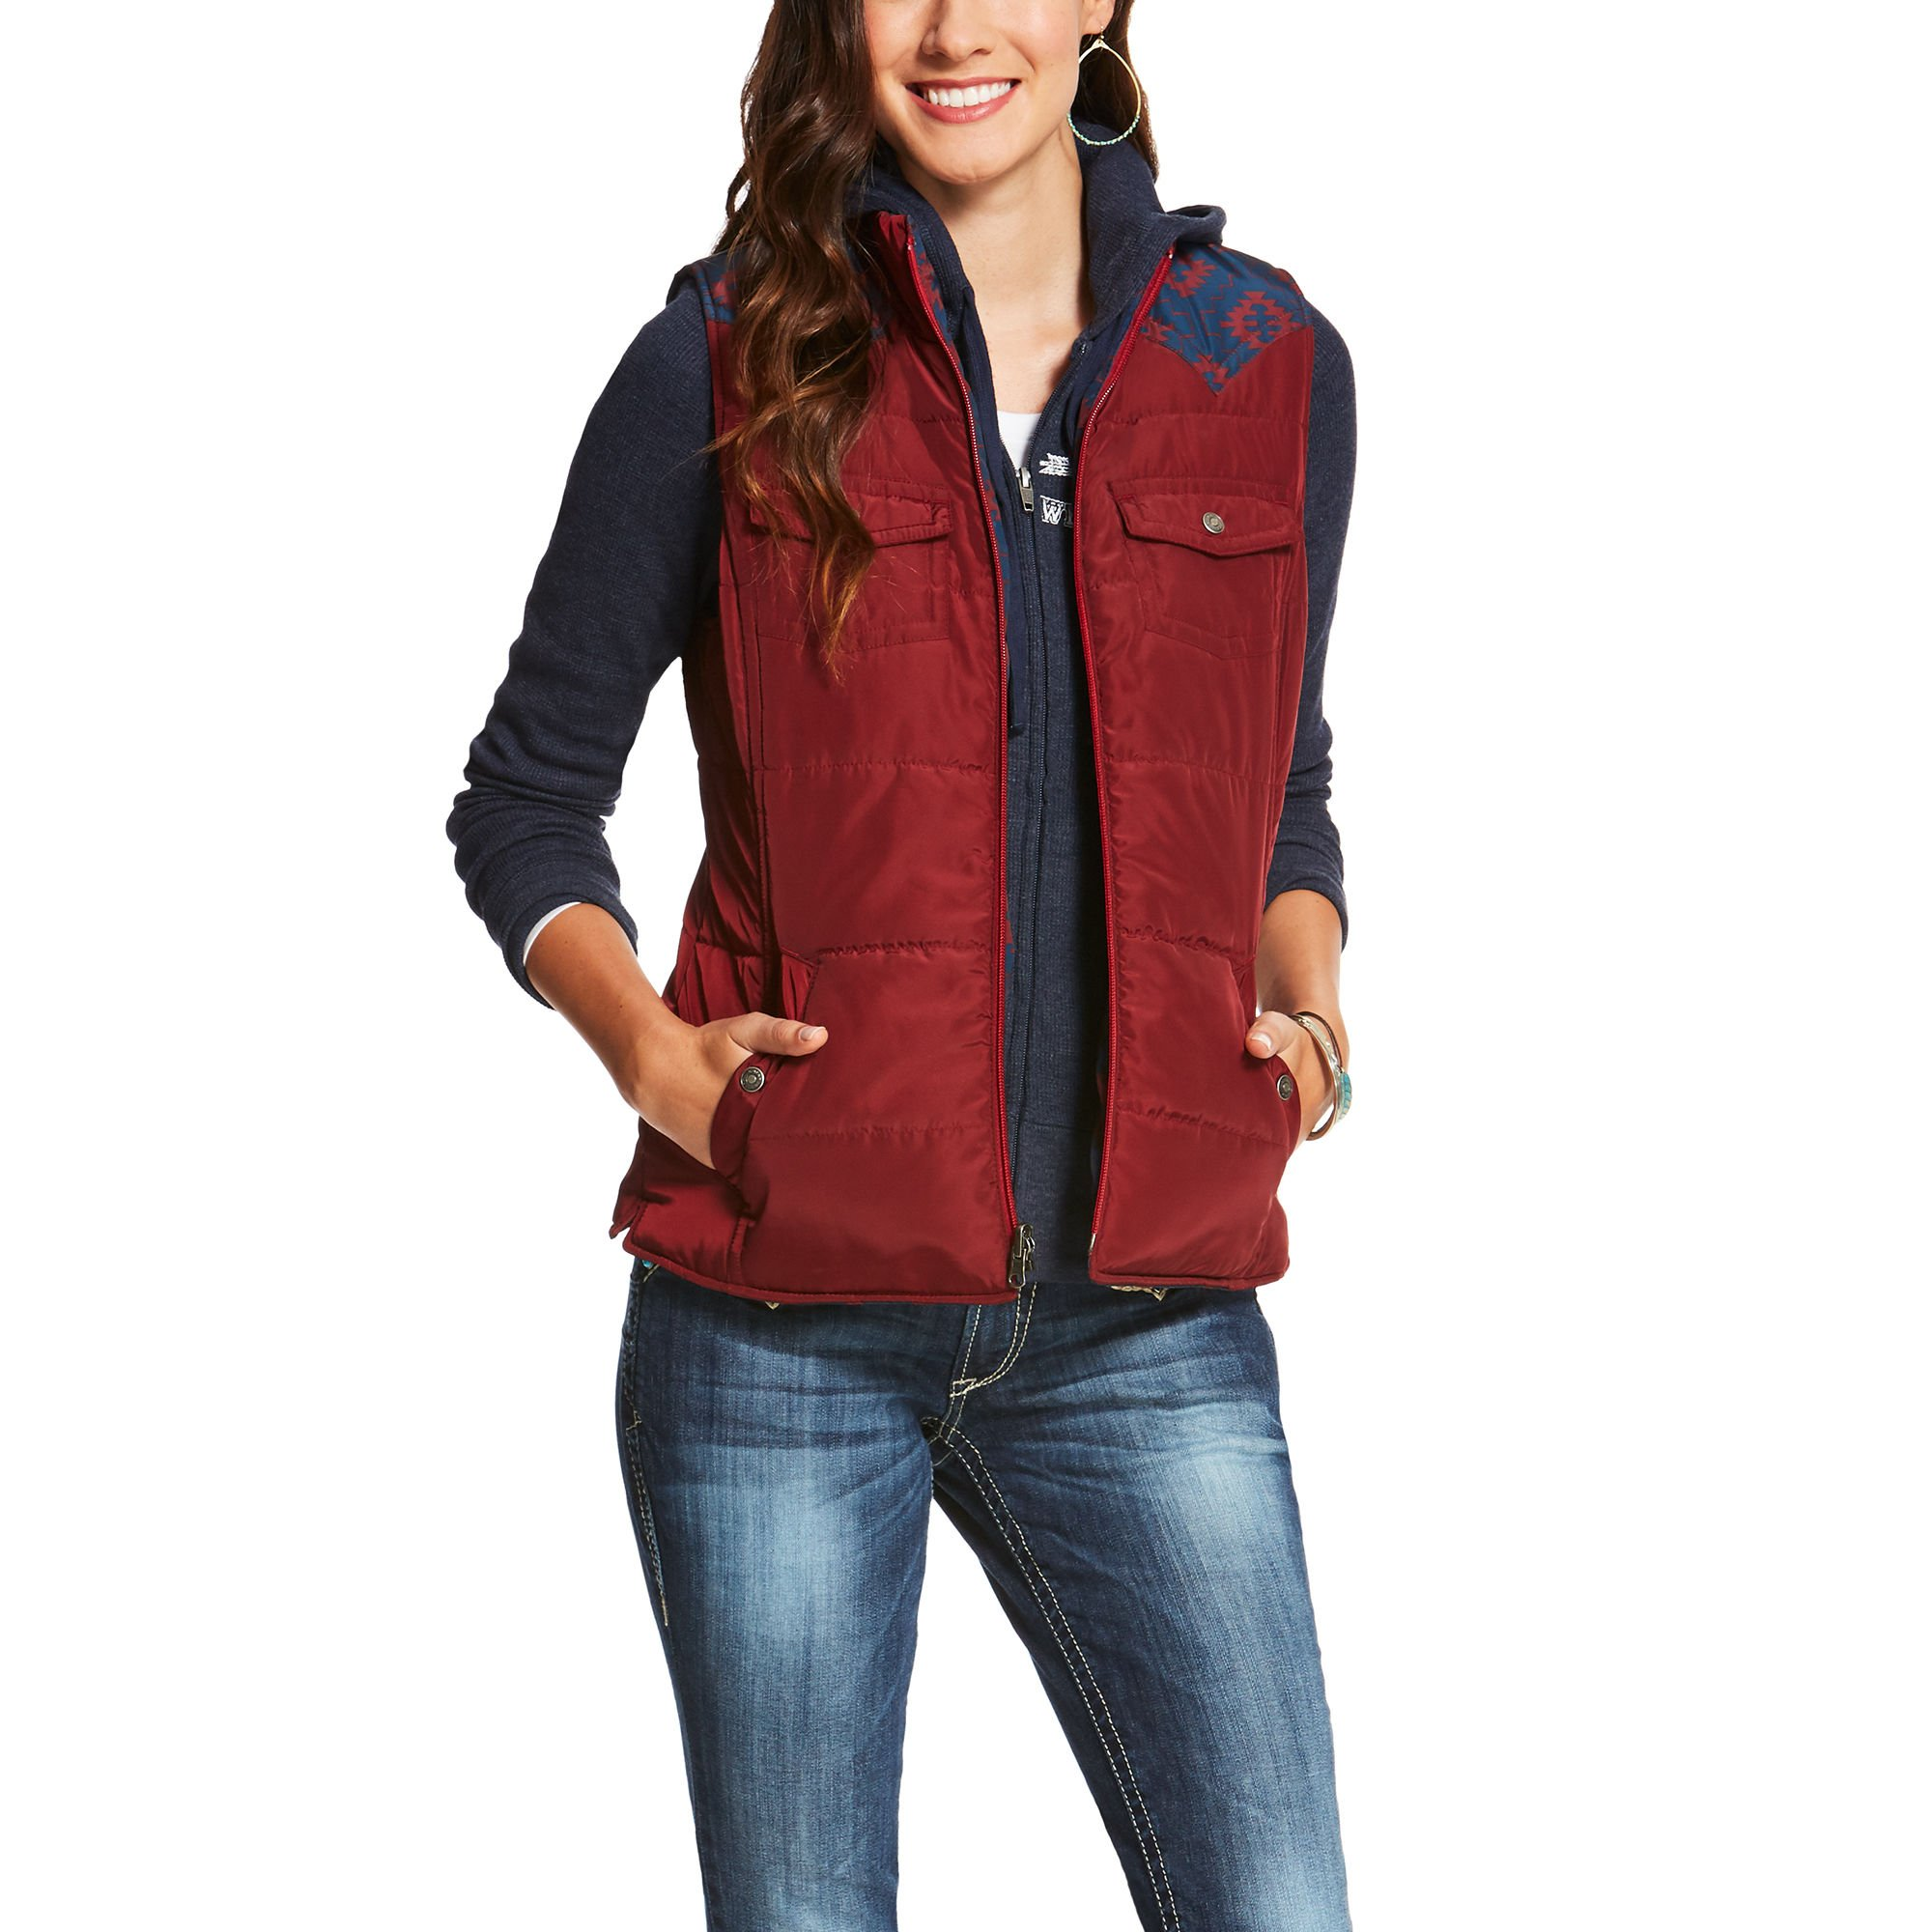 Ariat Womens County Reversible Vest LG R Multi